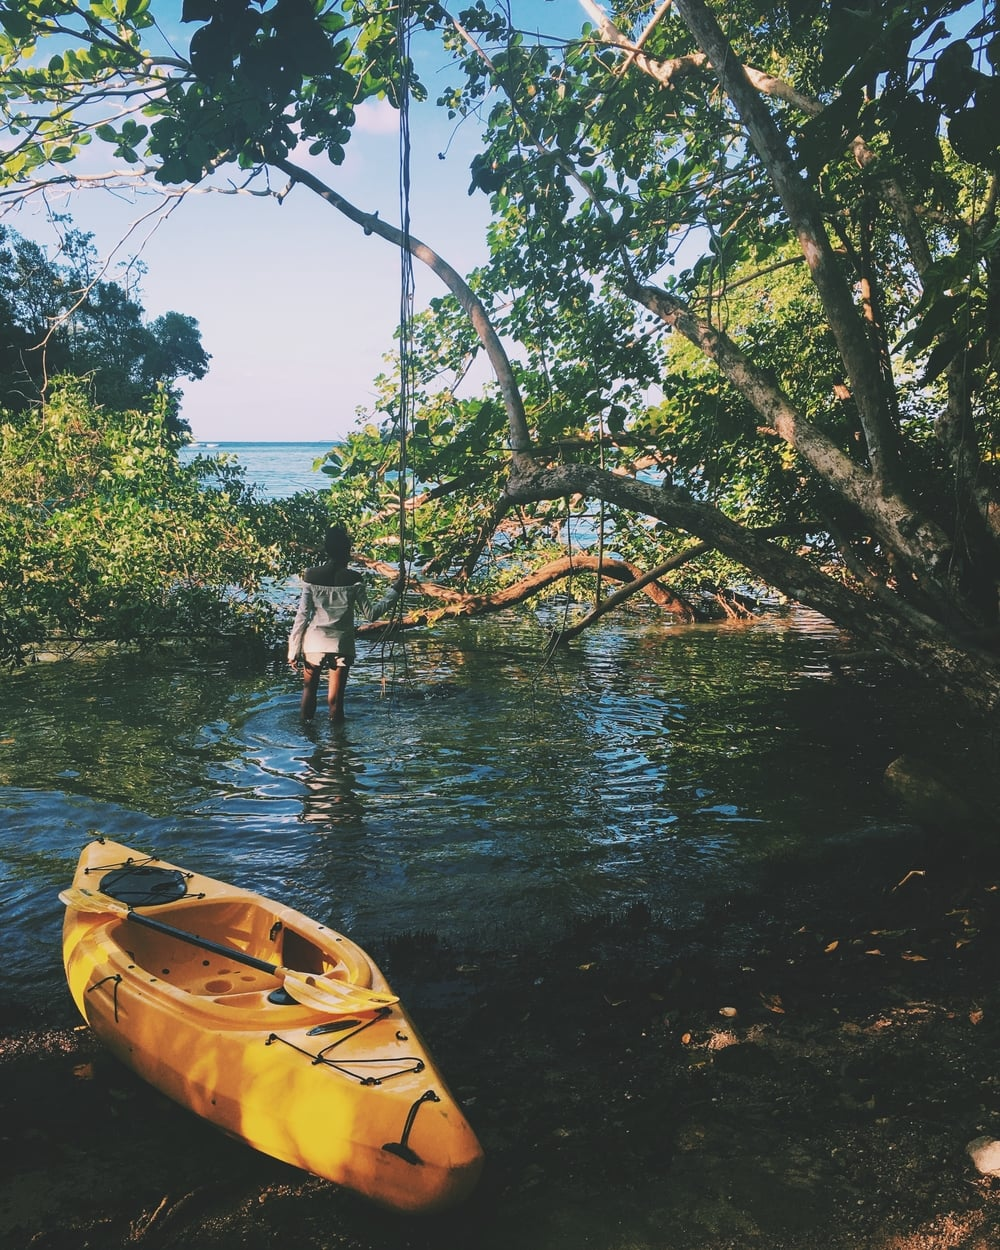 Canoeing near the Blue Lagoon, Portland parish, Jamaica